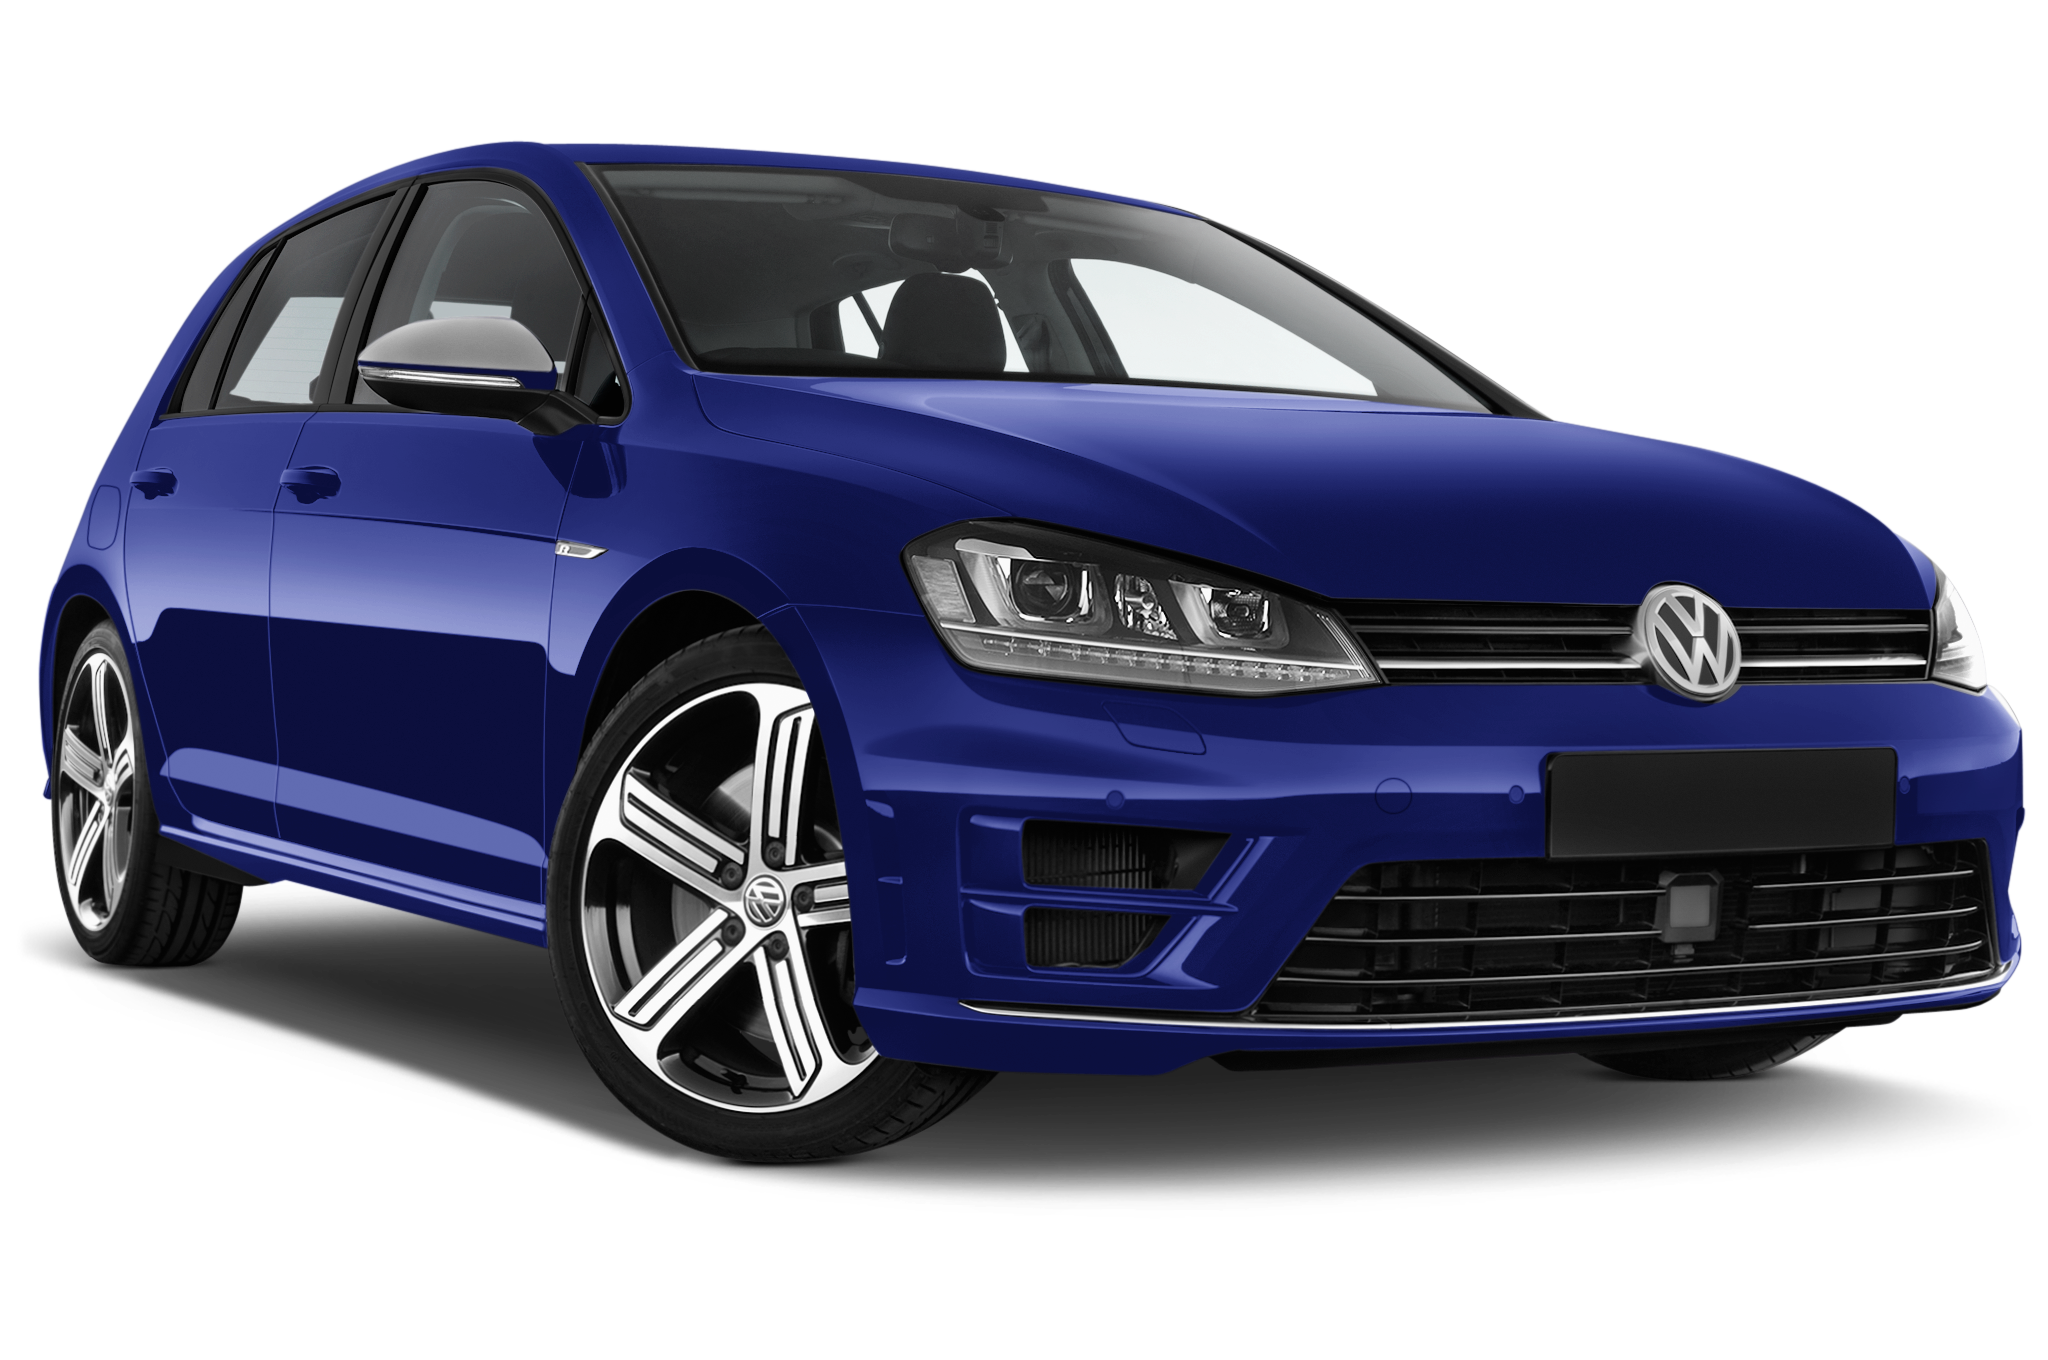 Volkswagen Golf R Lease Deals From 298pm Carwow